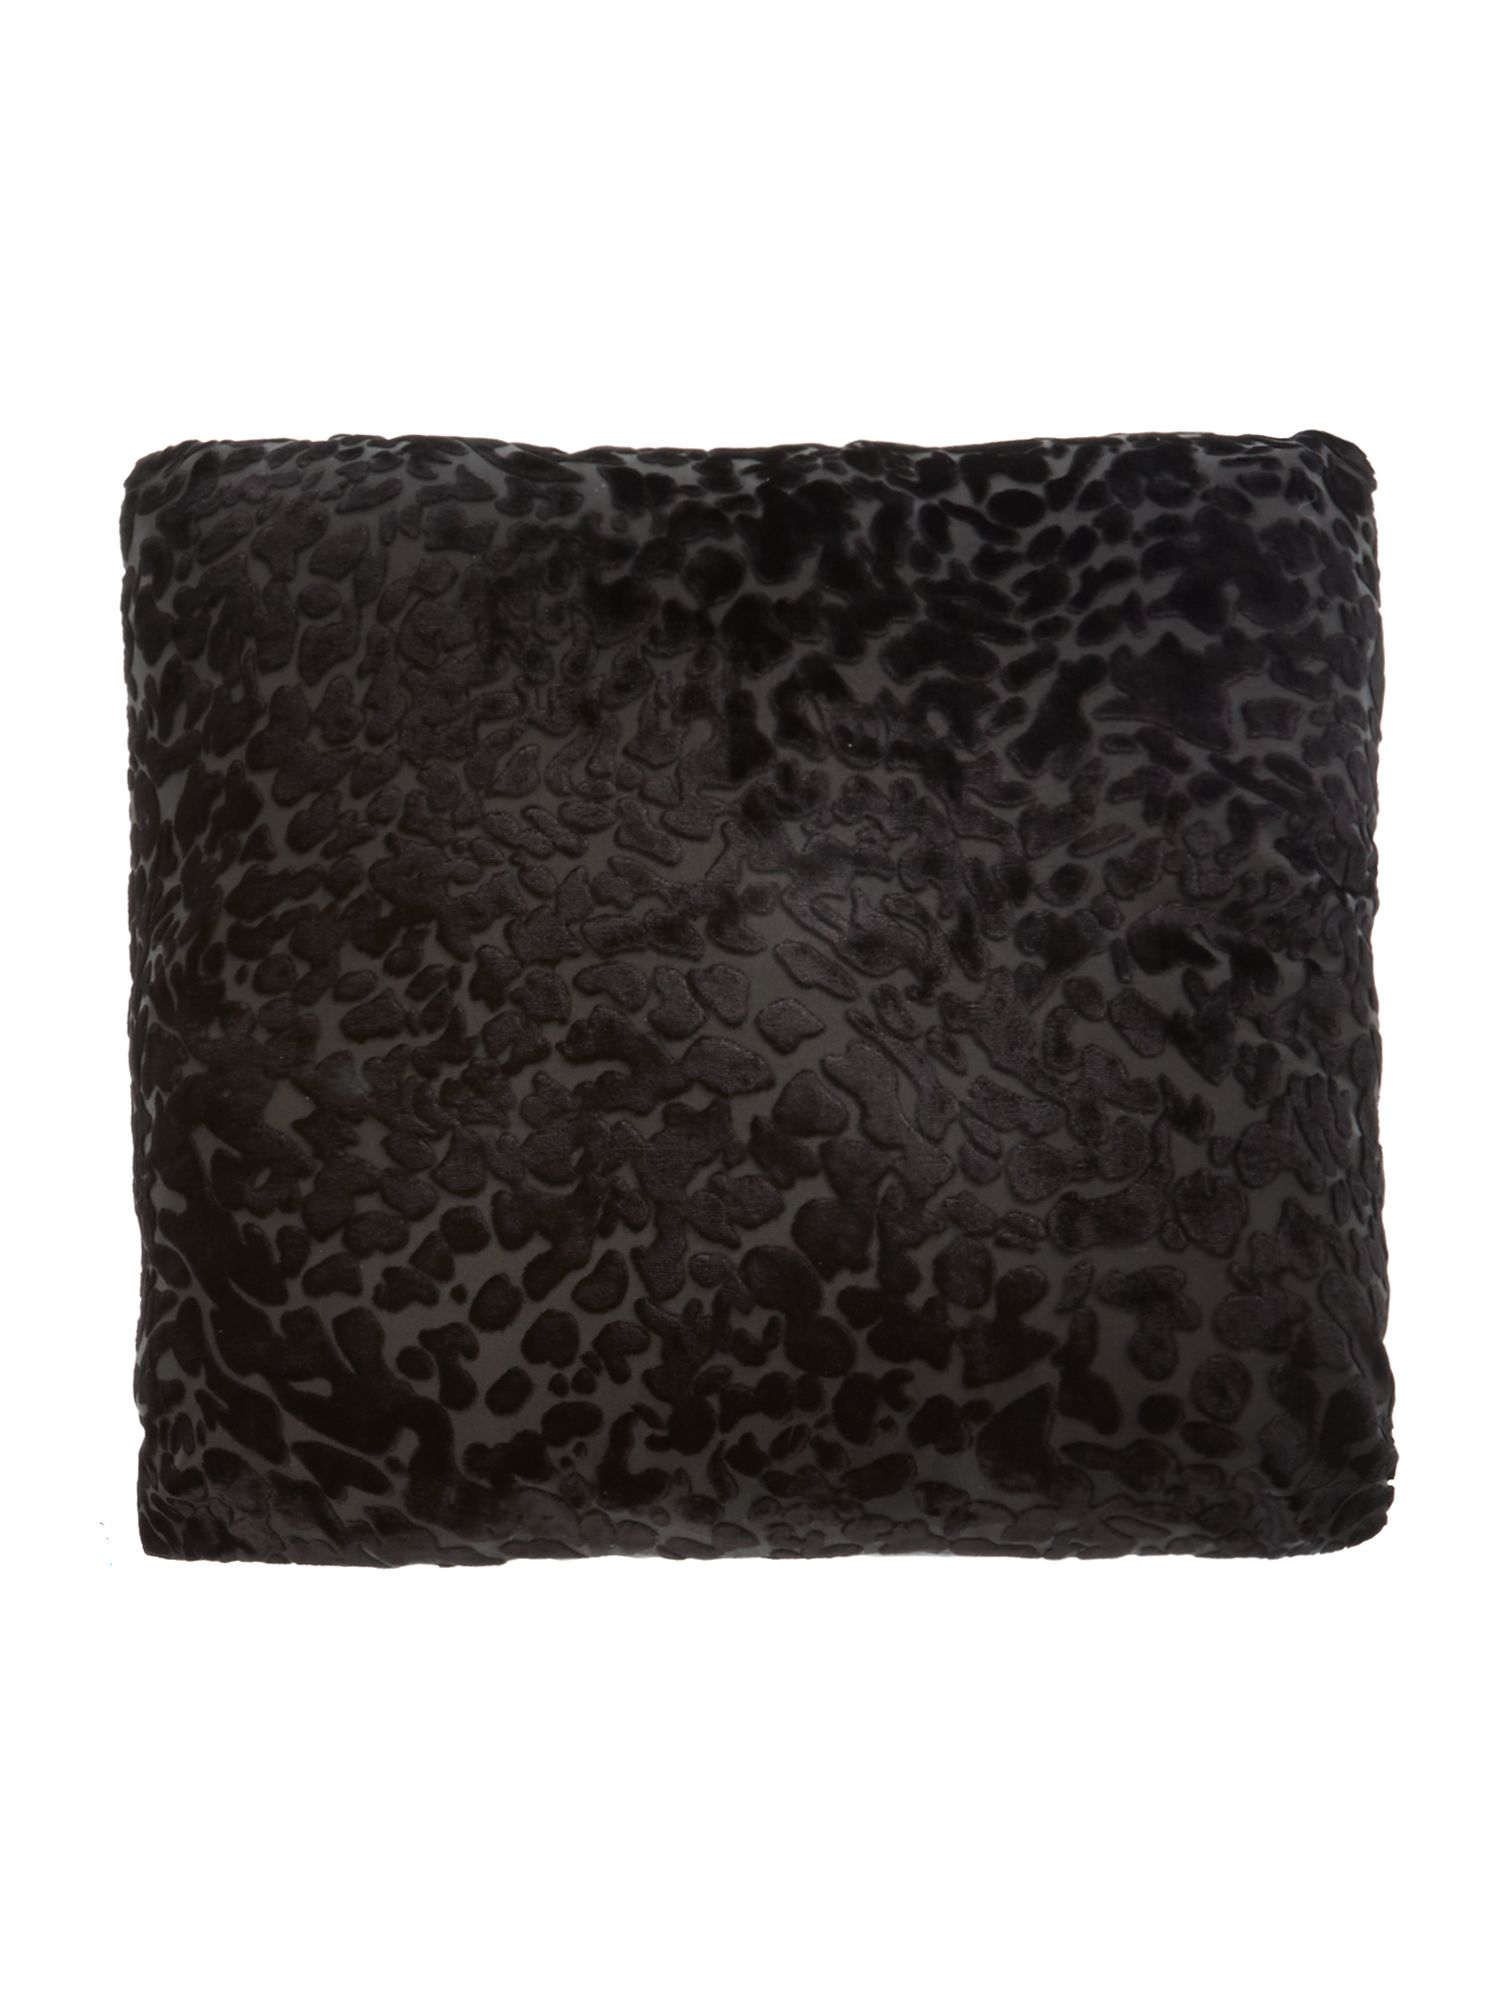 silba cushion in black